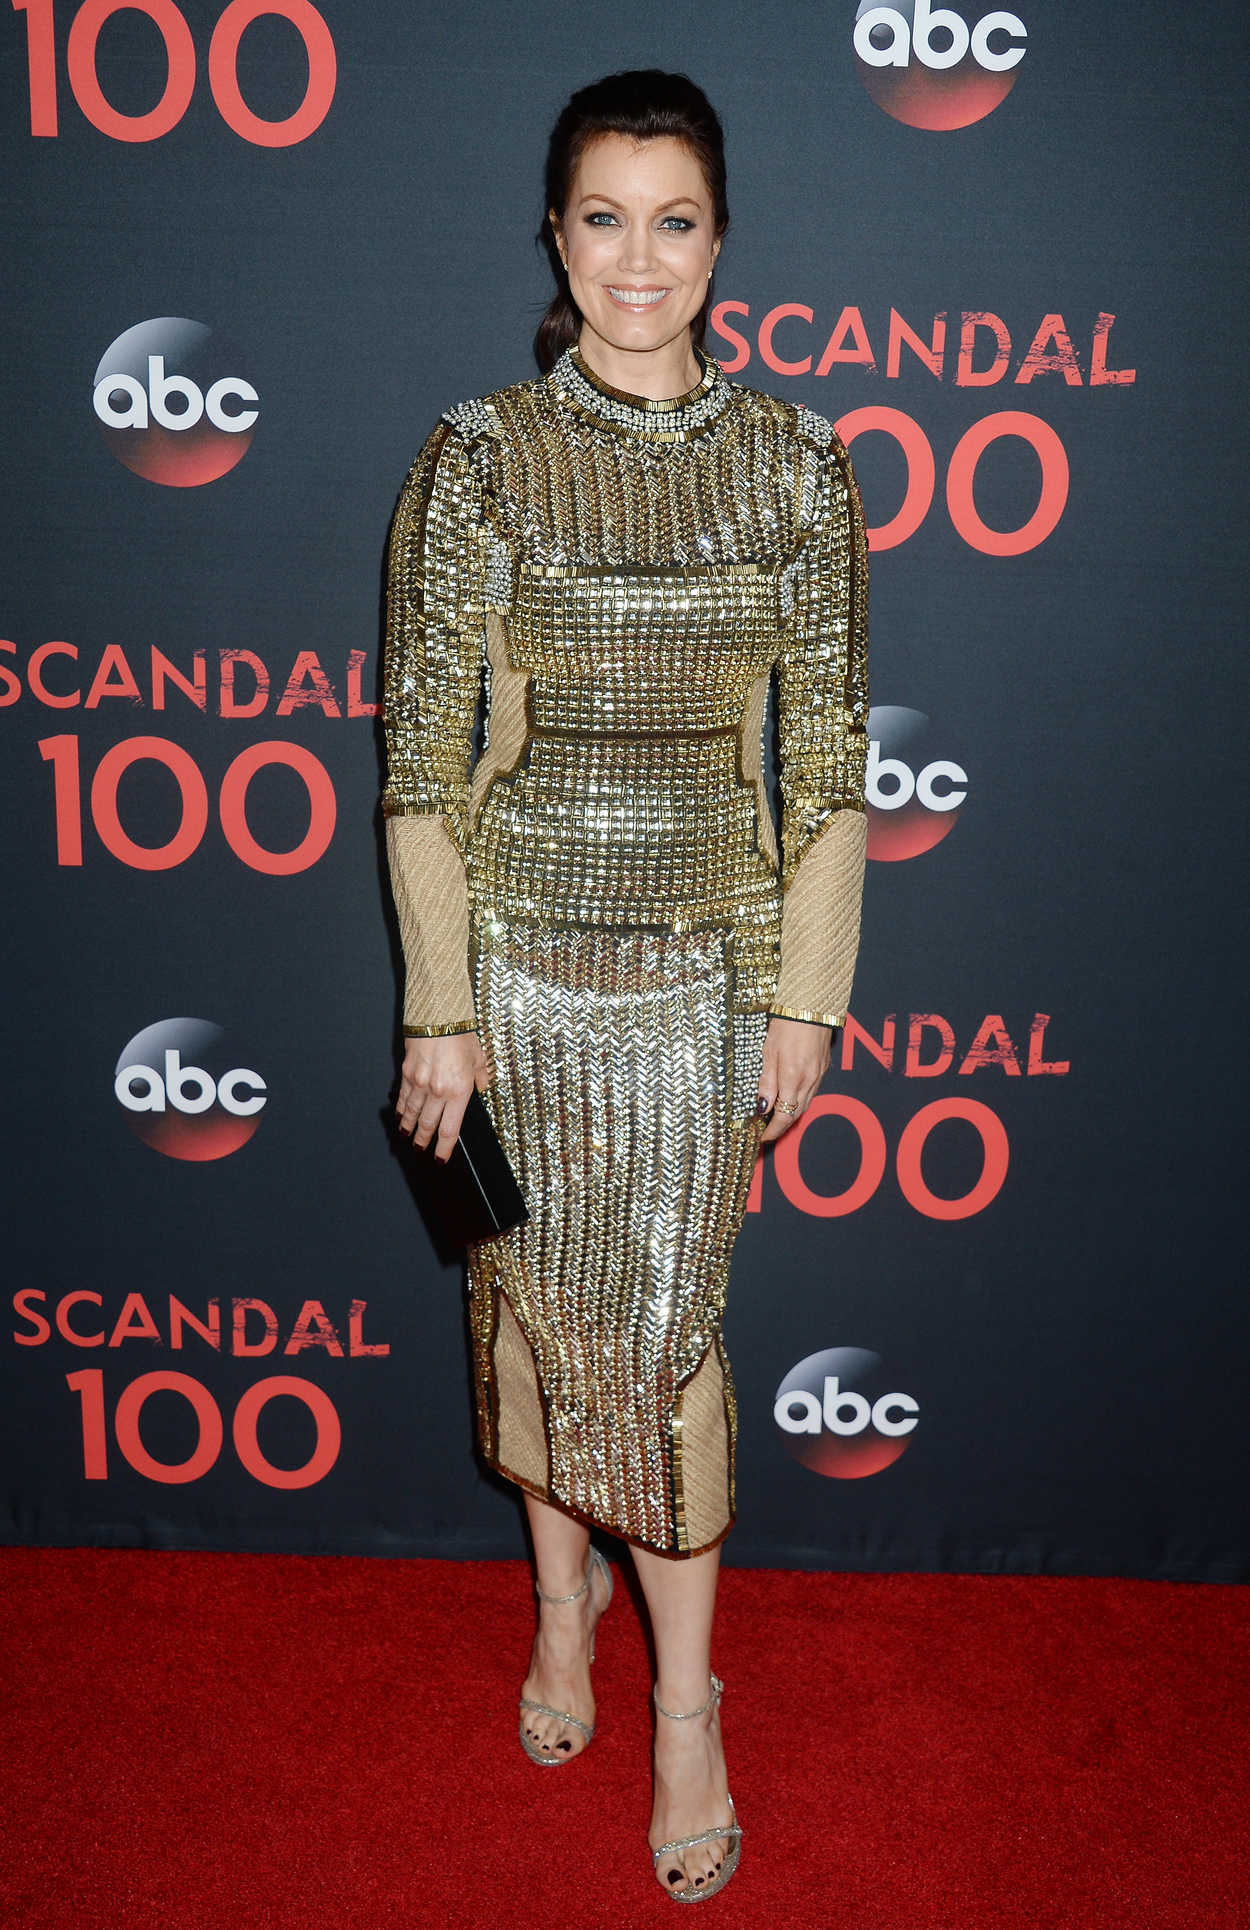 Bellamy Young - ABC Scandal 100 Episodes 2017